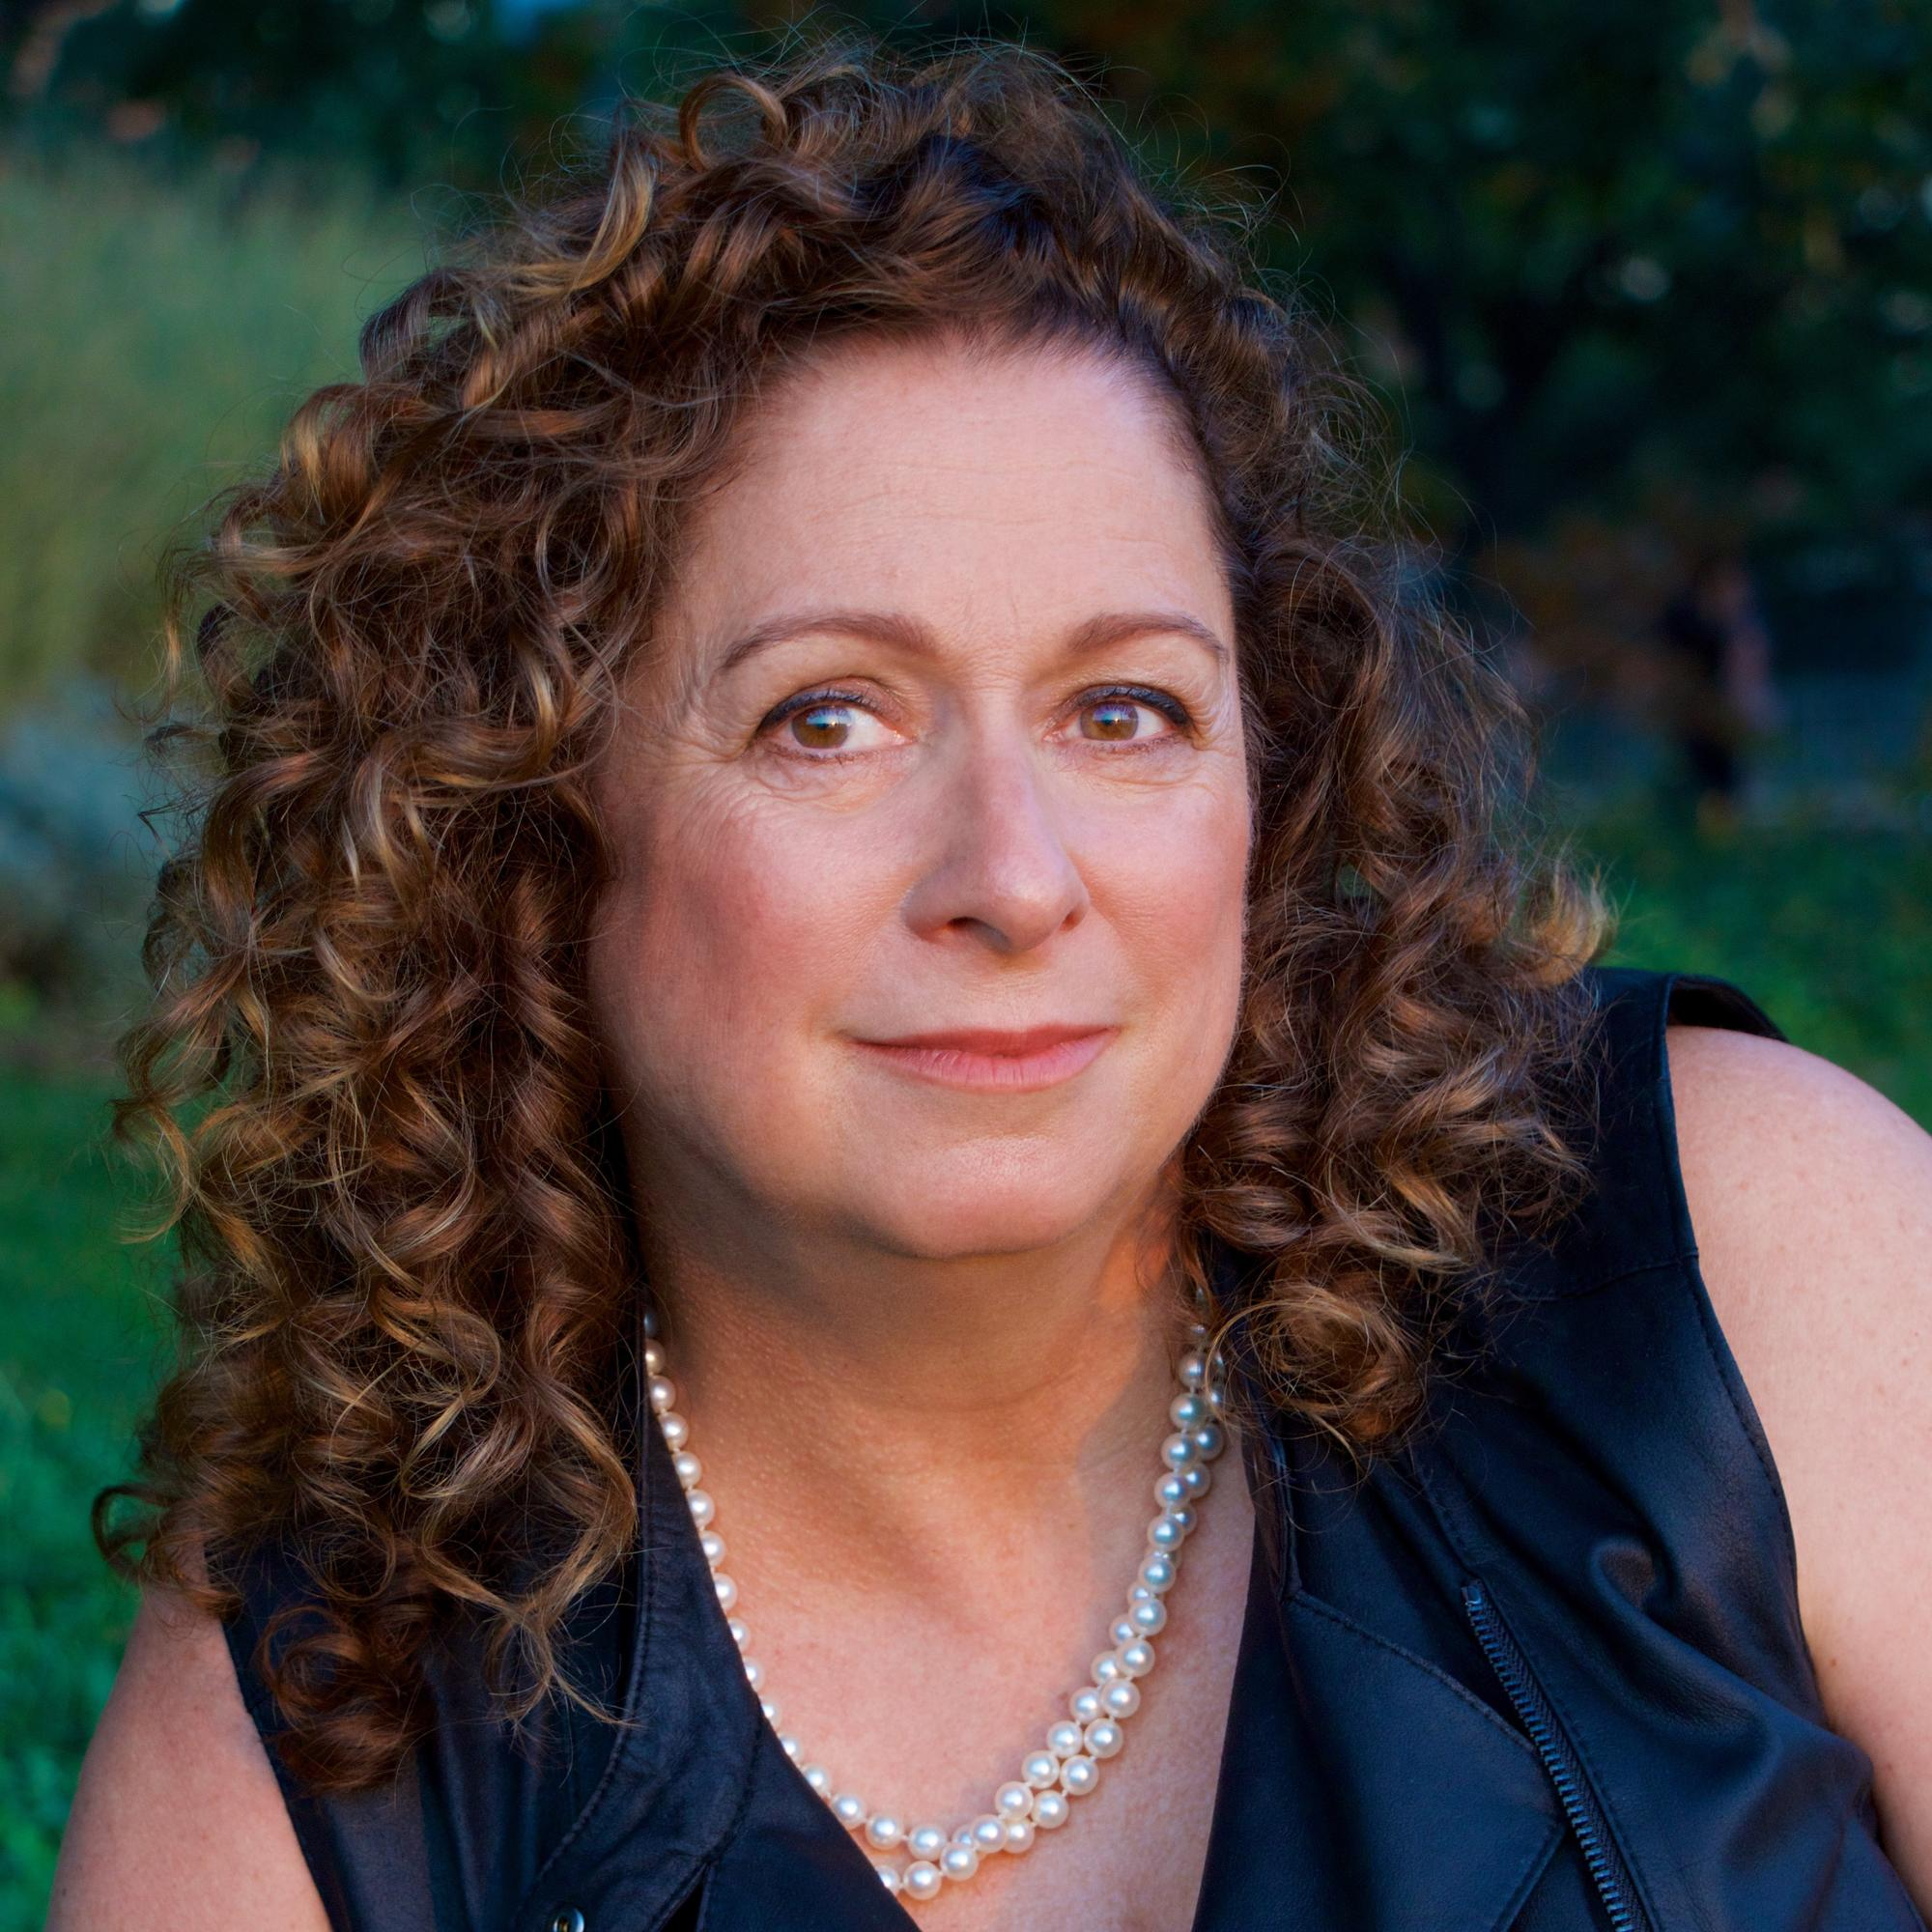 Abigail Disney headshot